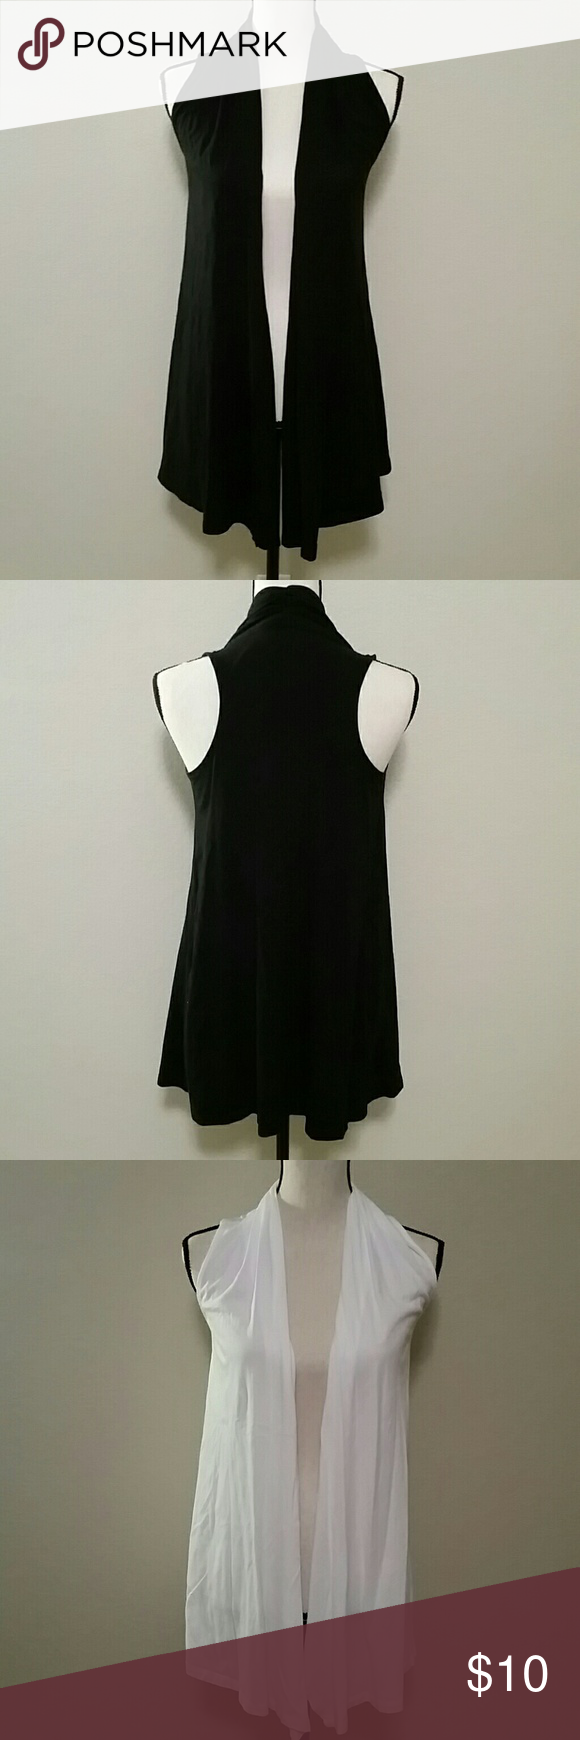 Express Sleeveless Cardigan Bundle Two ? Express sleeveless cardigan bundle in black and white,  size XS, pre-owned but in excellent condition. Express Sweaters Cardigans